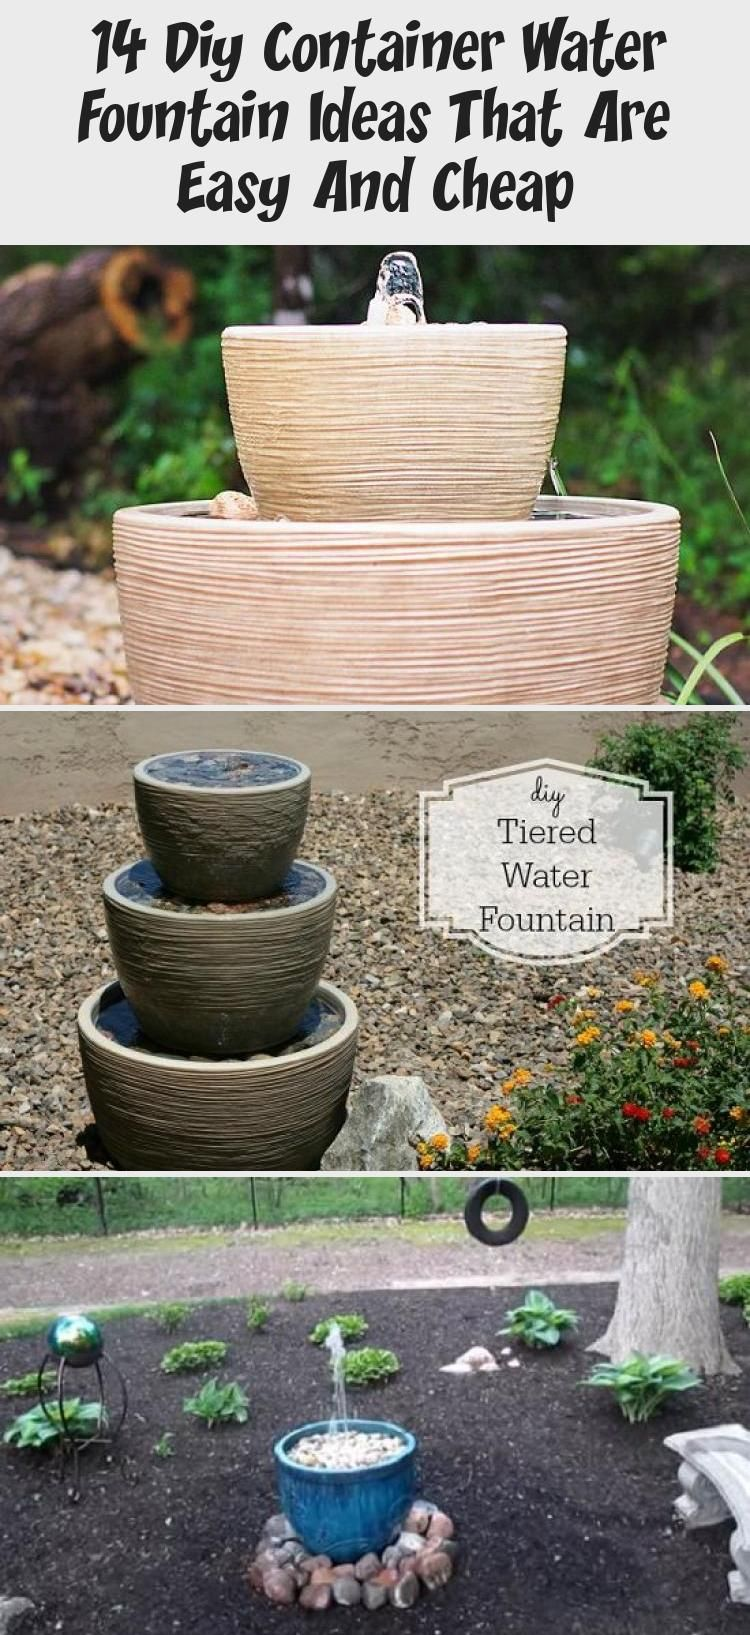 14 Diy Container Water Fountain Ideas That Are Easy And Cheap – GARDEN Balcony